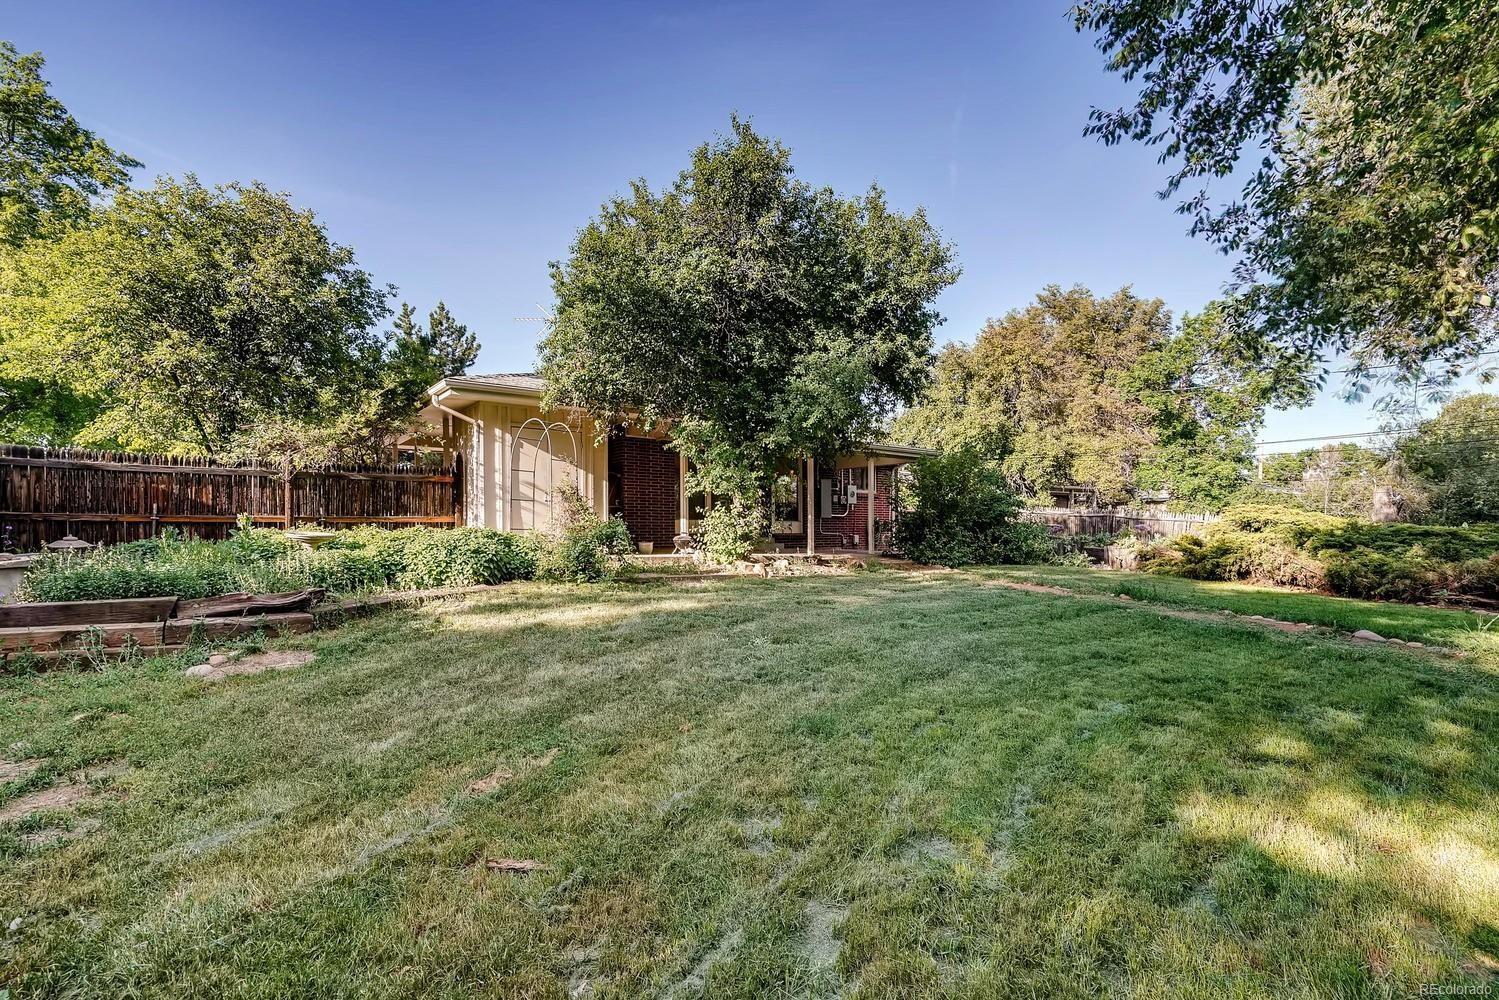 MLS# 2798119 - 25 - 762 W Caley Avenue, Littleton, CO 80120